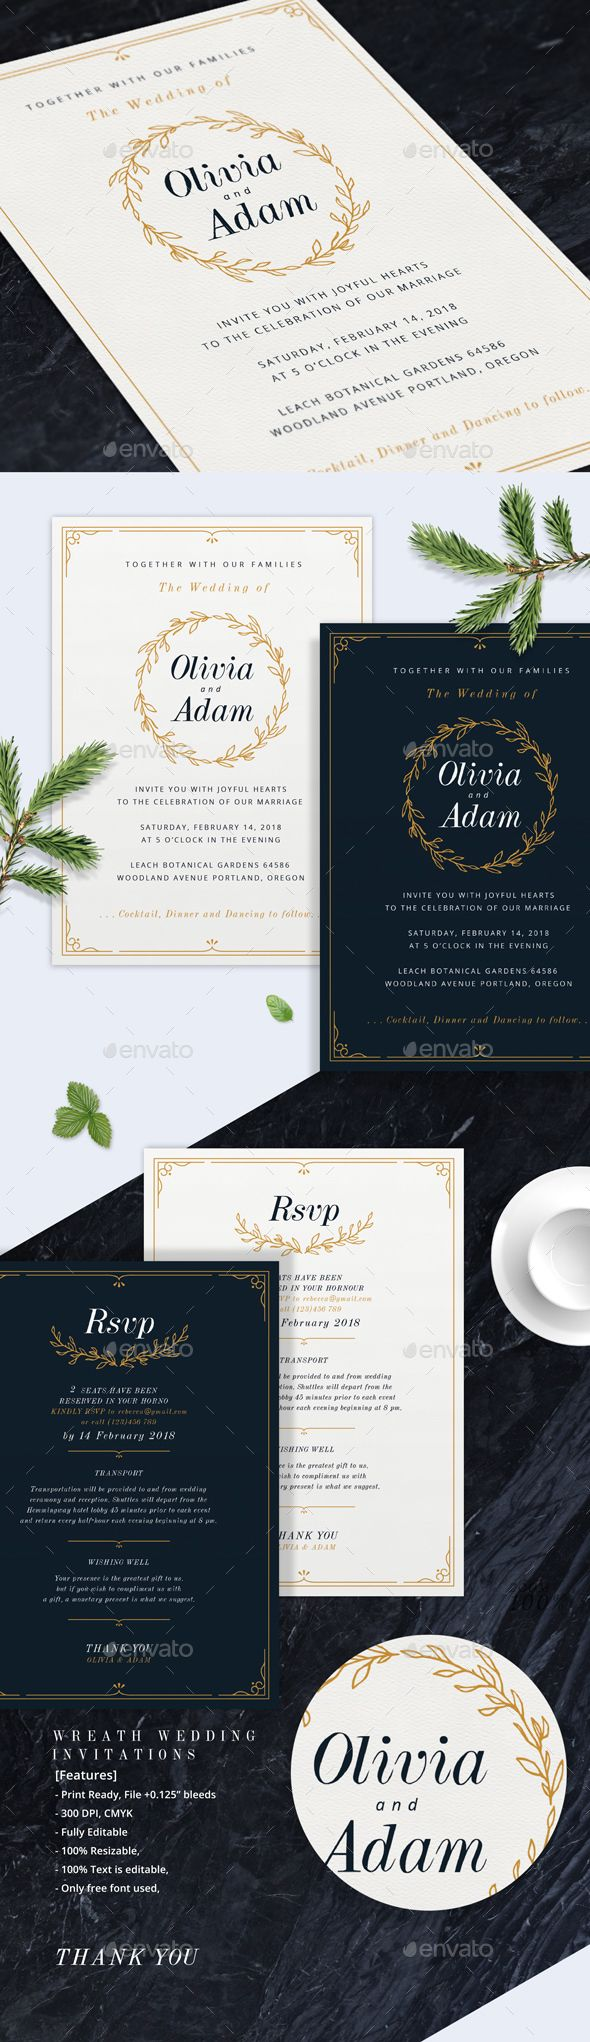 free wedding invitation psd%0A Wreath Wedding Invitations